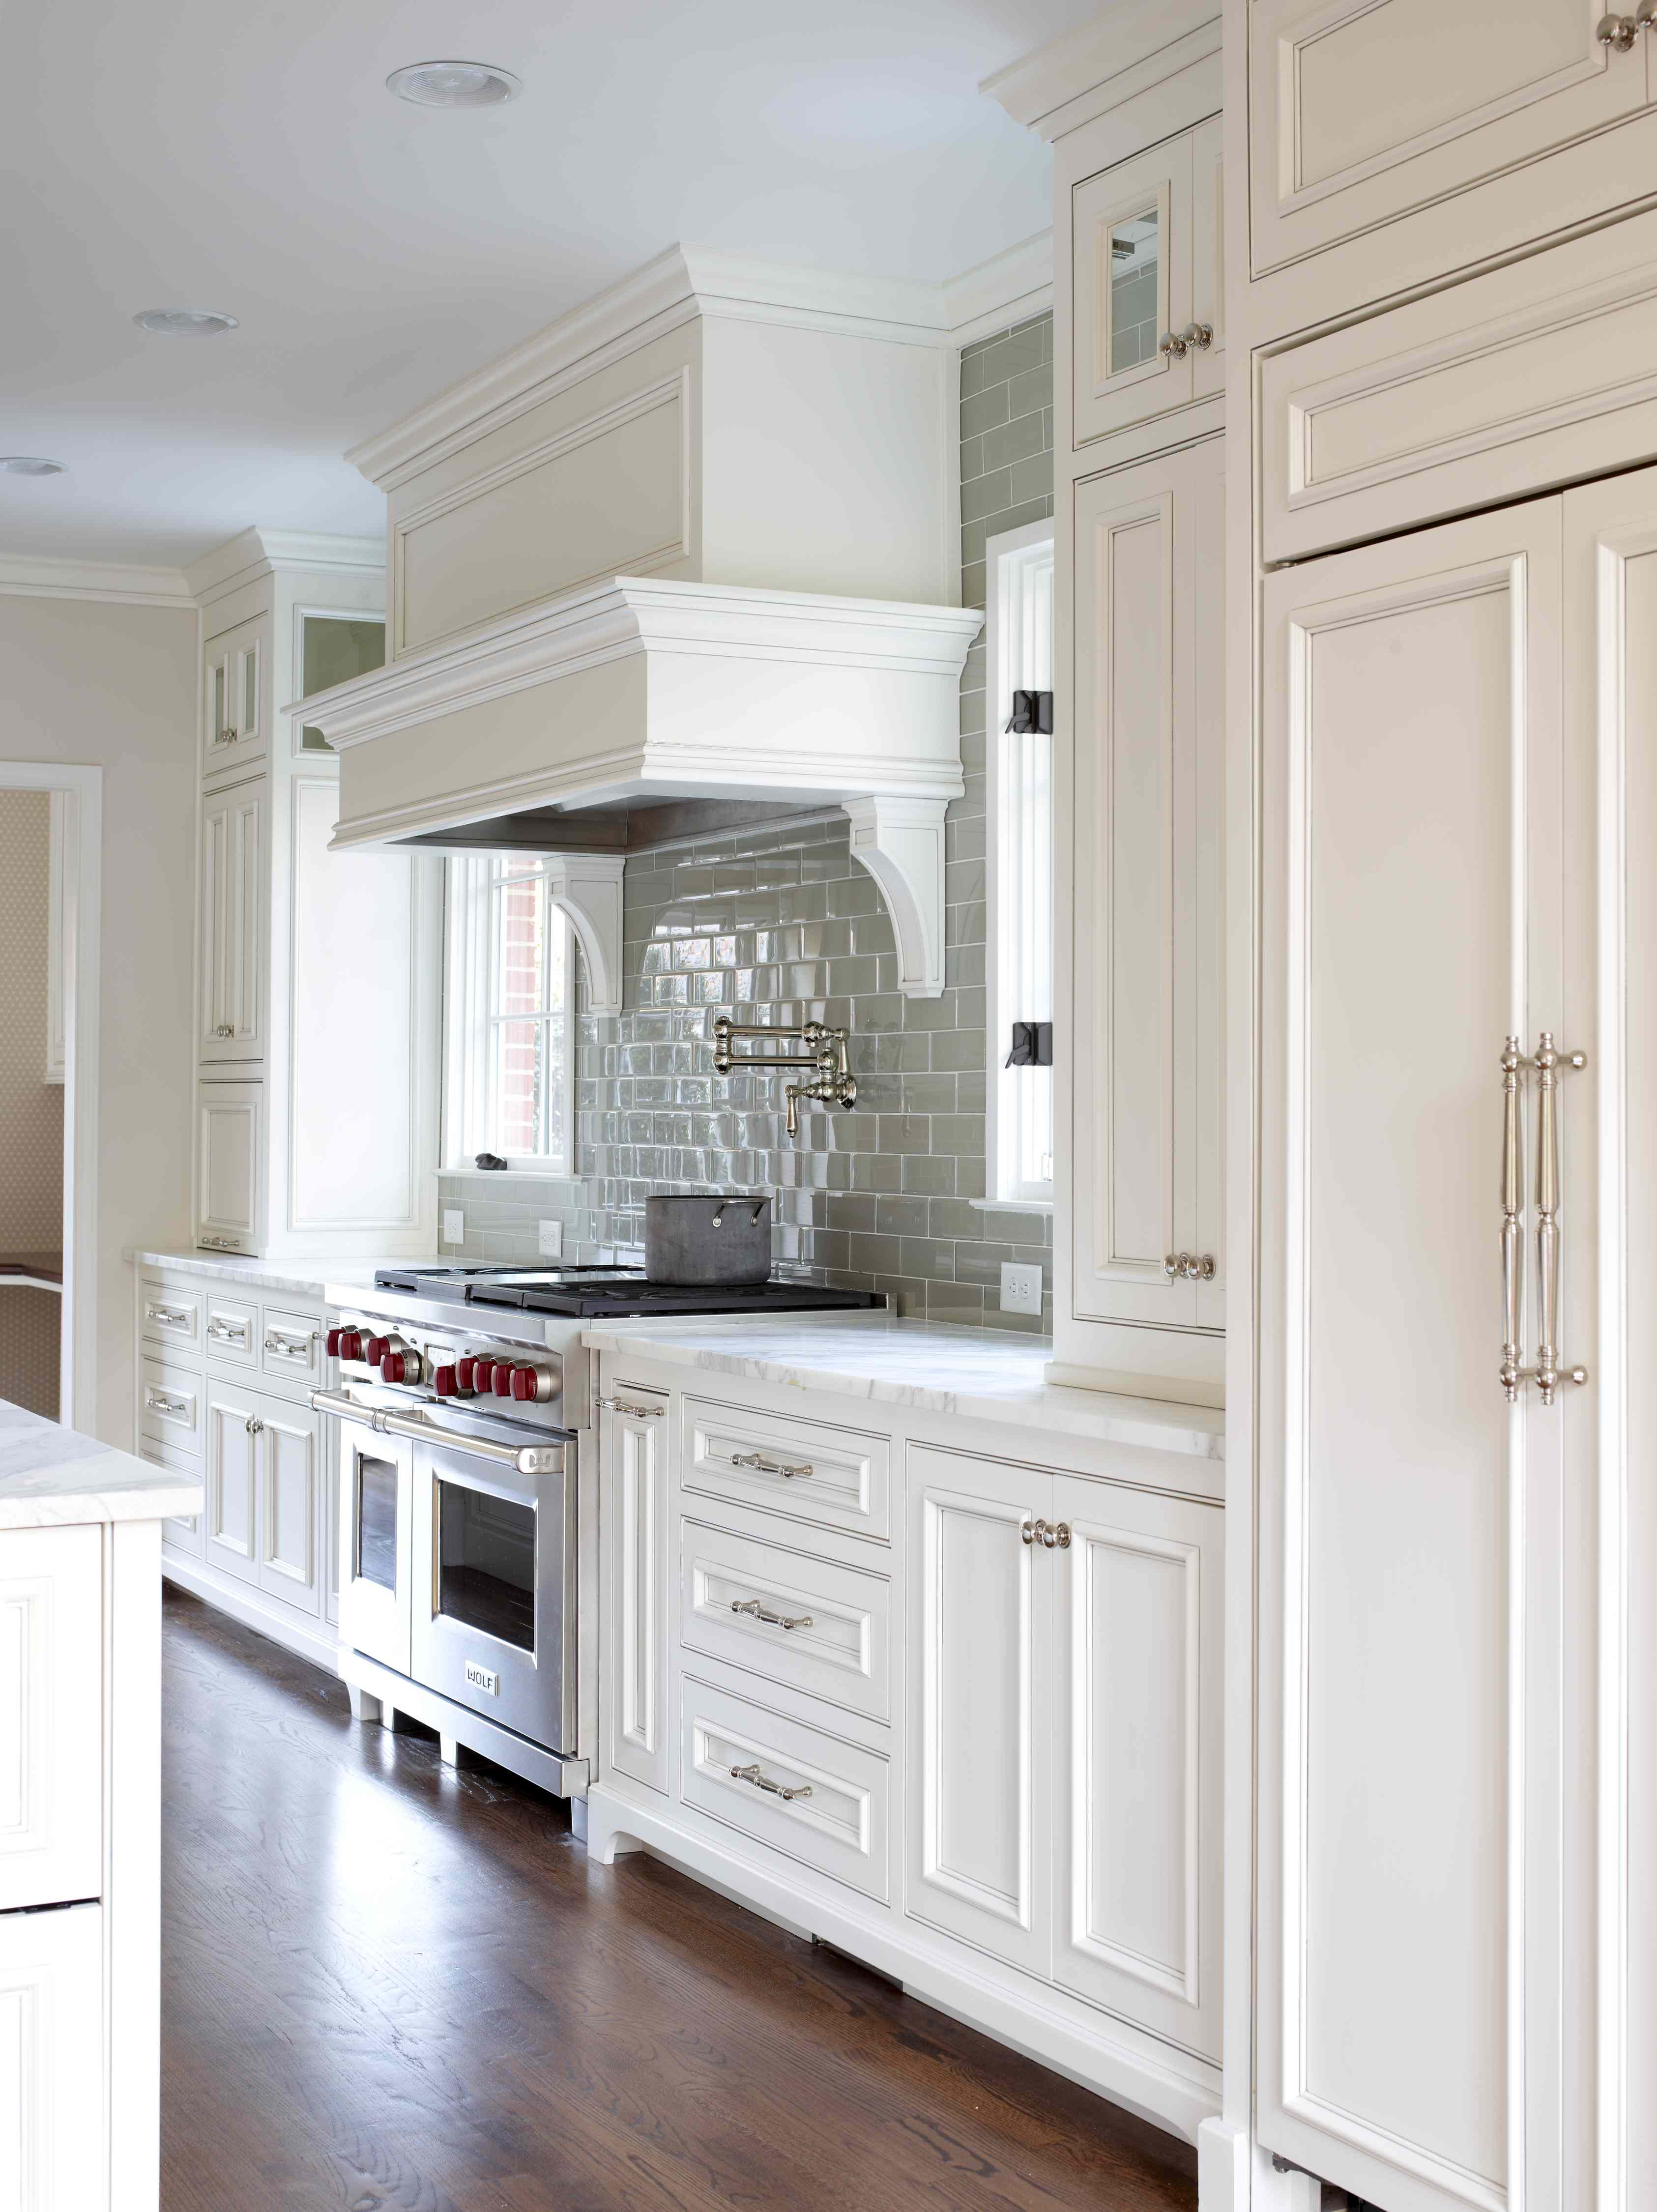 Kitchen Tile Backsplash with White Cabinets